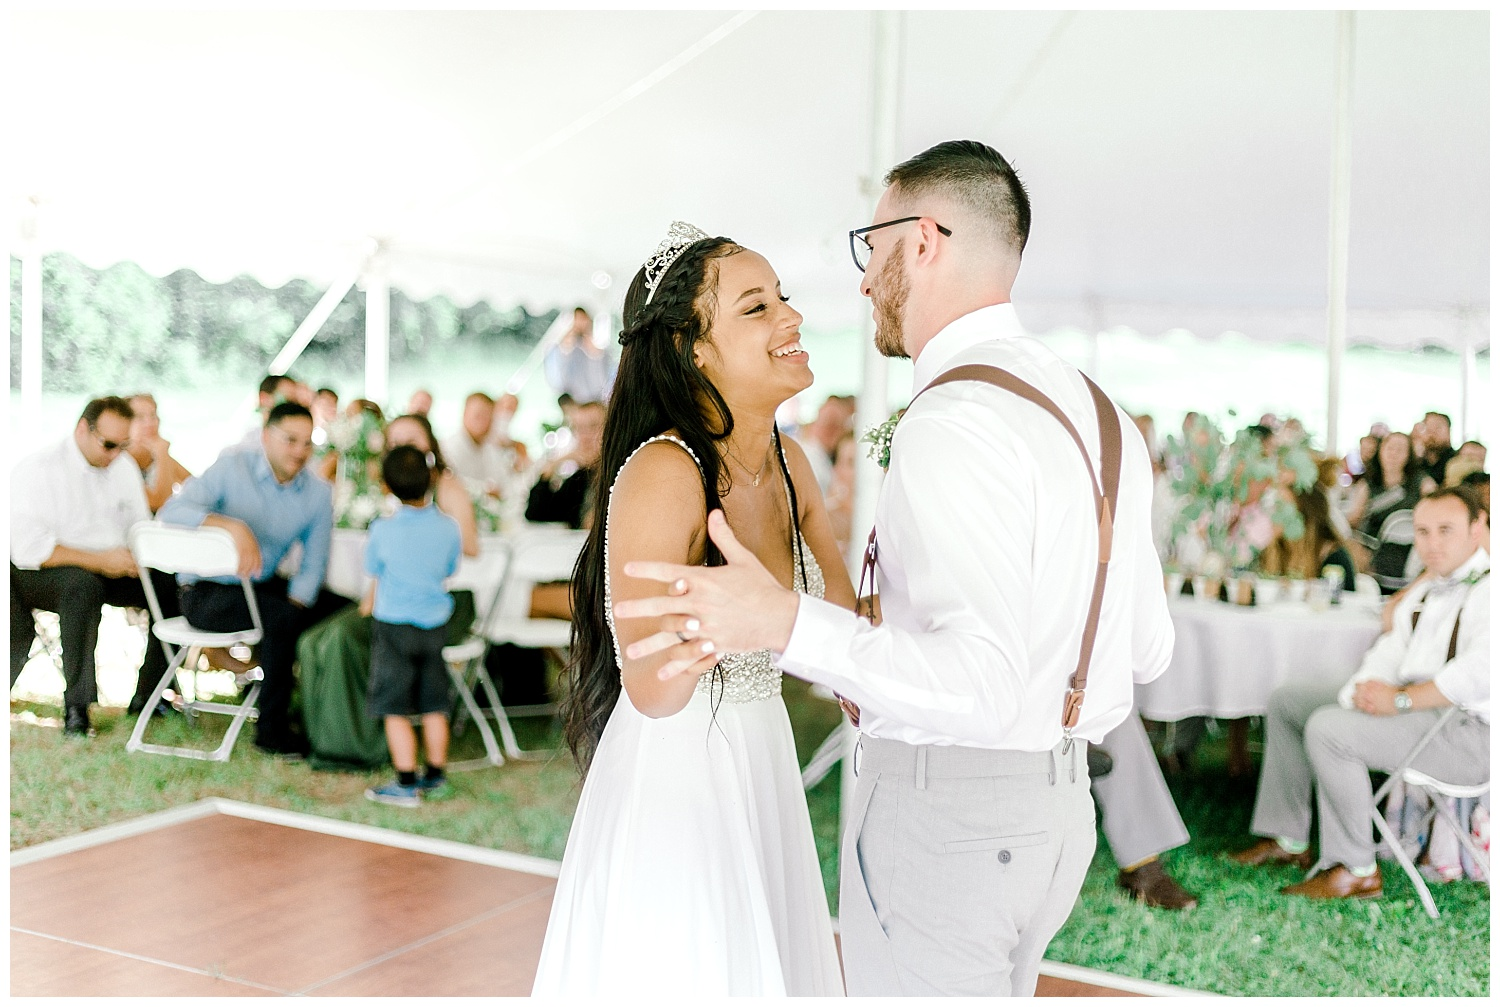 Olive green and white rustic barn wedding at burnside plantation in bethlehem pennsylvania by PA based destination wedding and lifestyle photographer Lytle photography (61).jpg